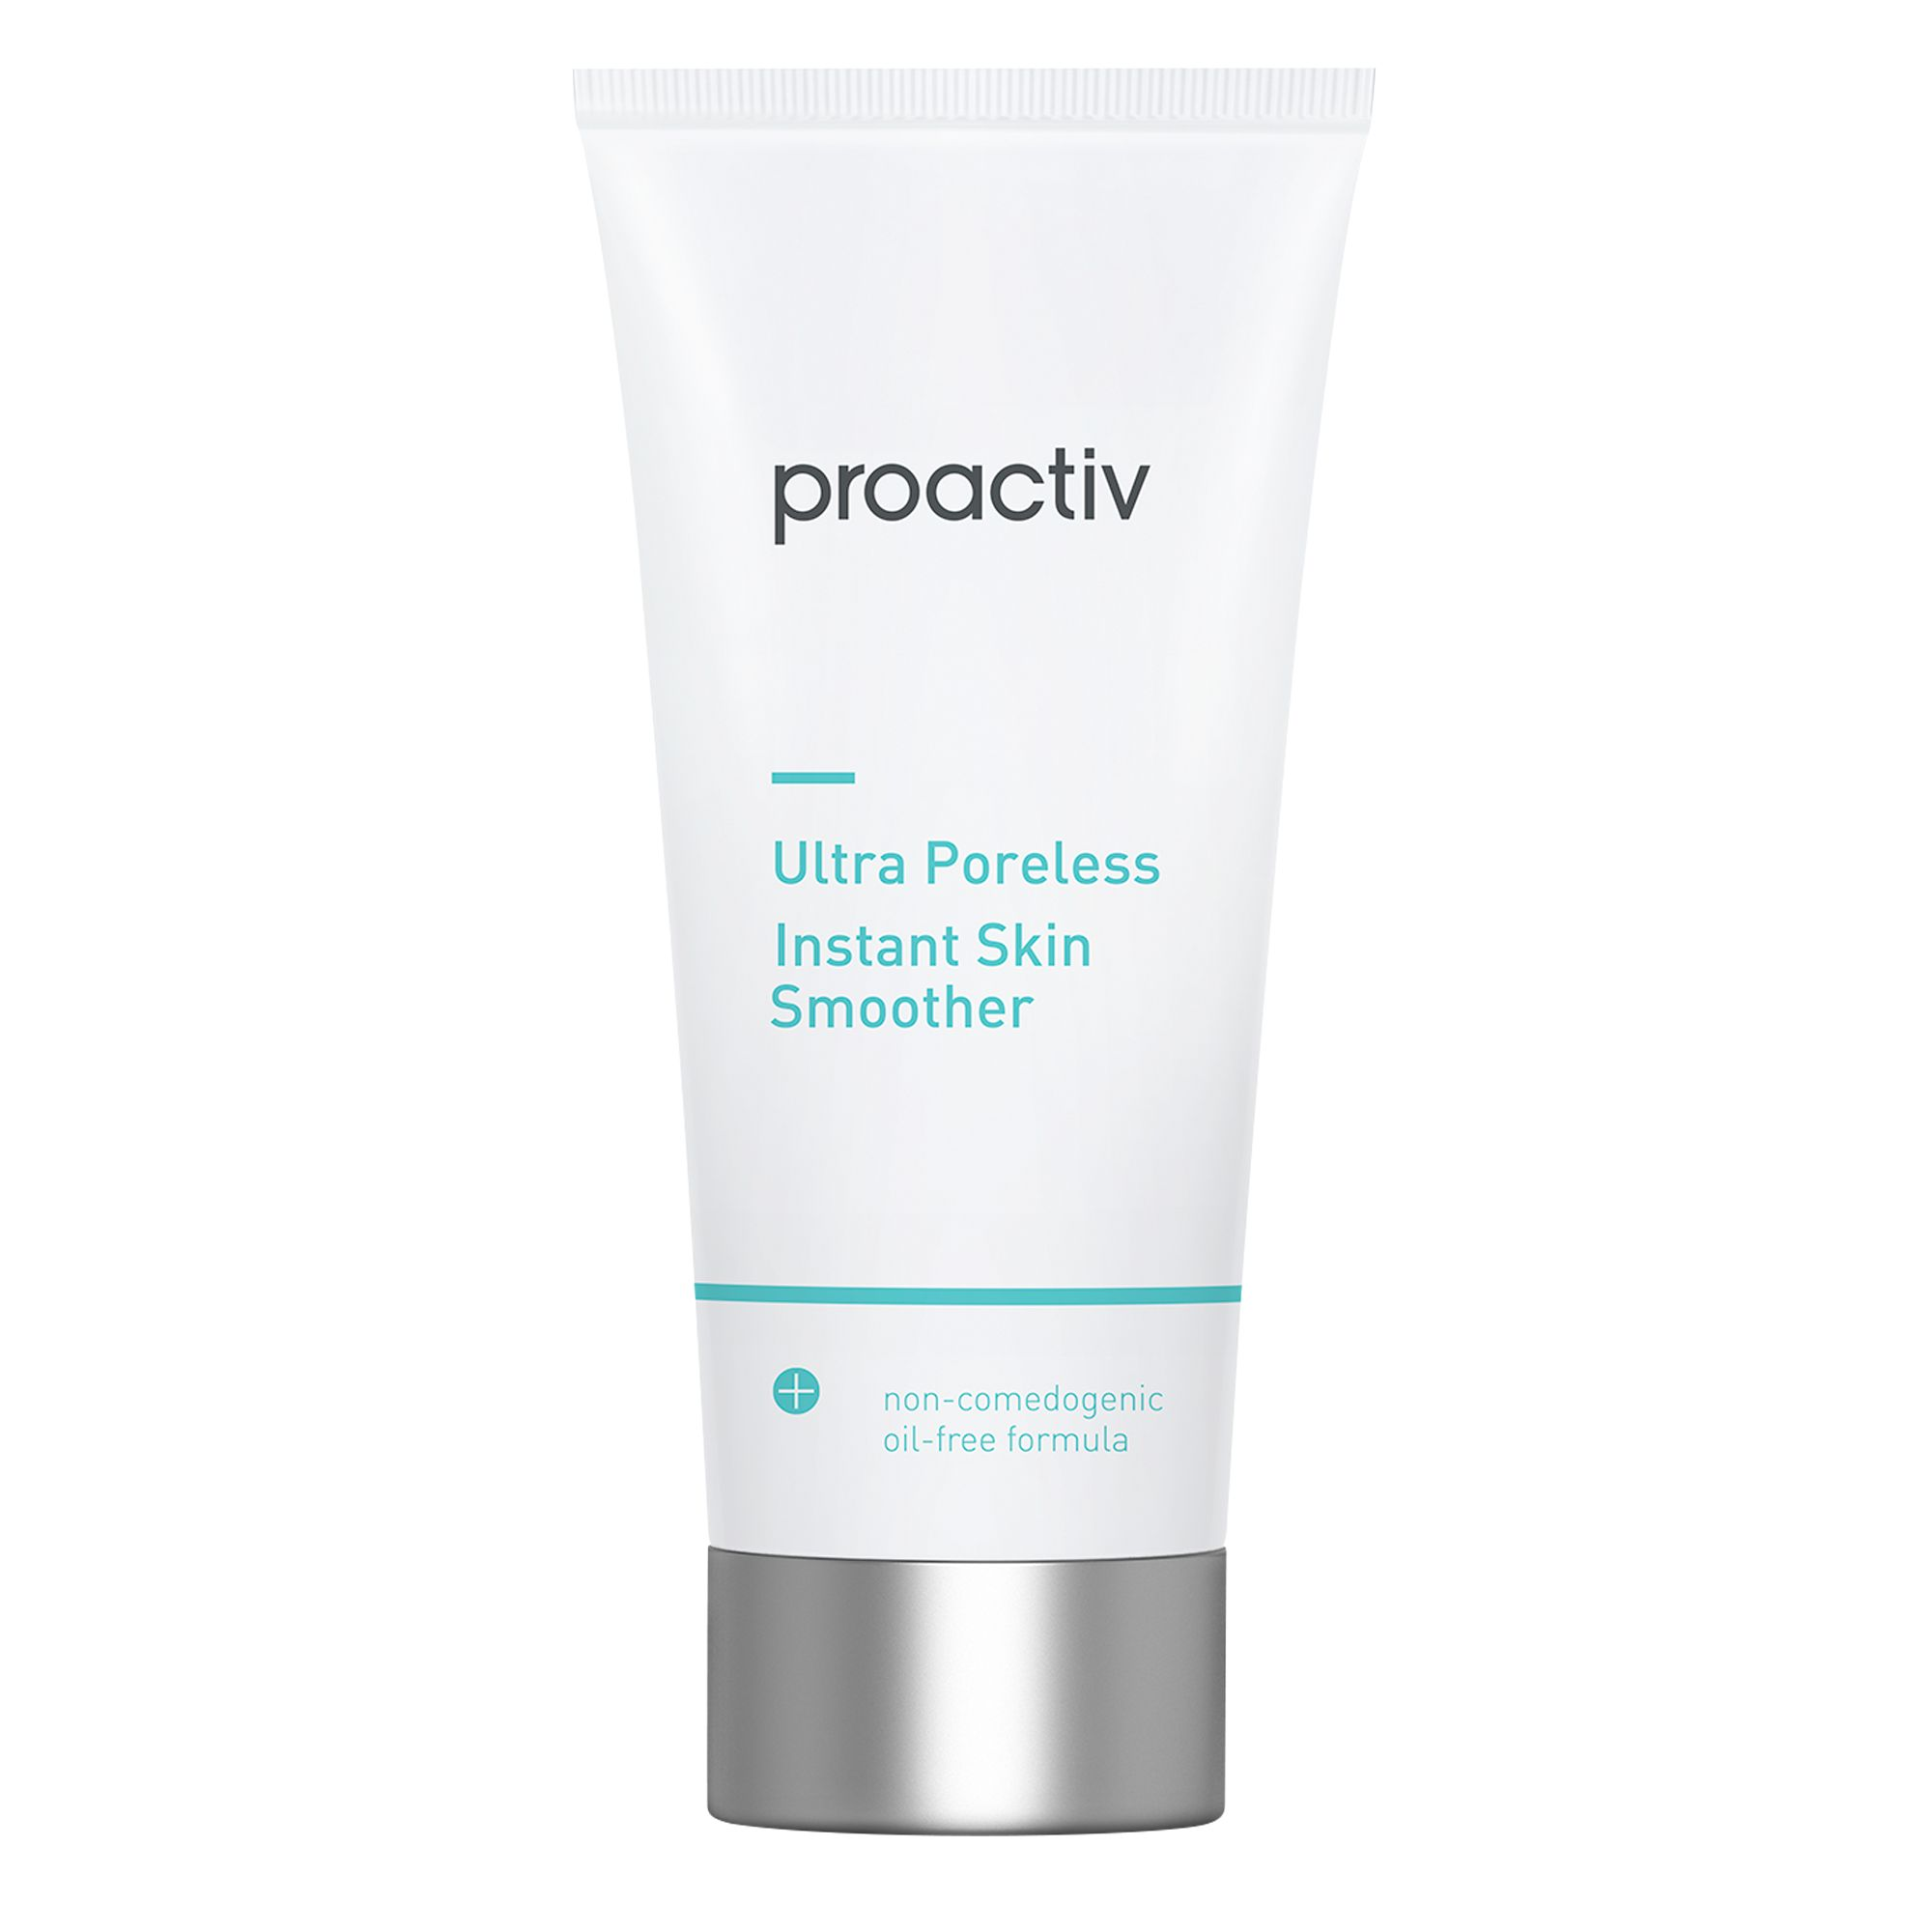 Less is More: Lighter Makeup Products; Proactiv